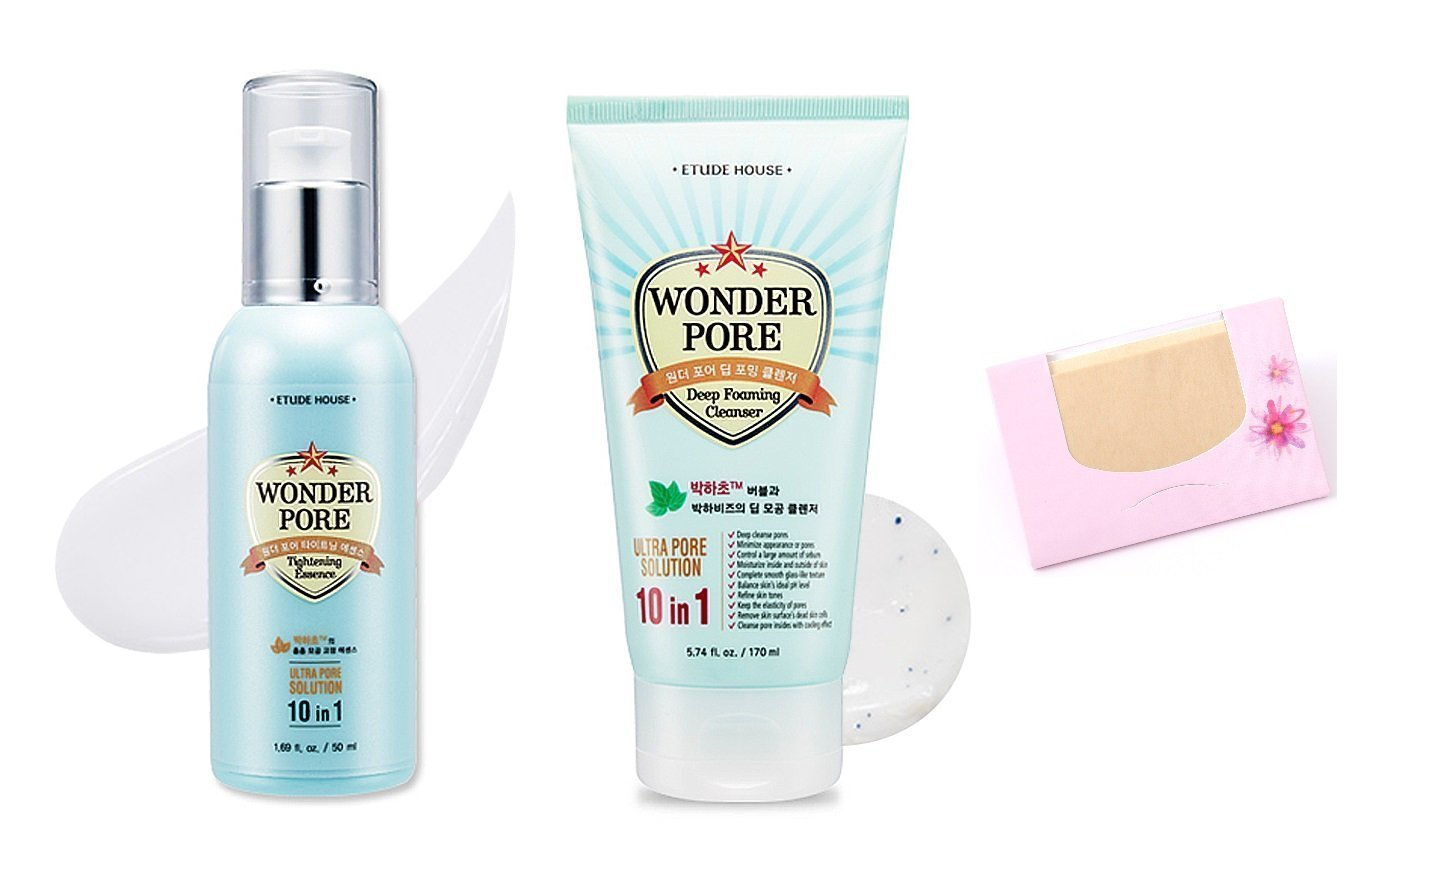 Bundle Etude House Wonder Pore Tightening Essence Freshner 500 Ml Deep Foaming Cleanser Soltreebundle Natural Hemp Paper 50pcs